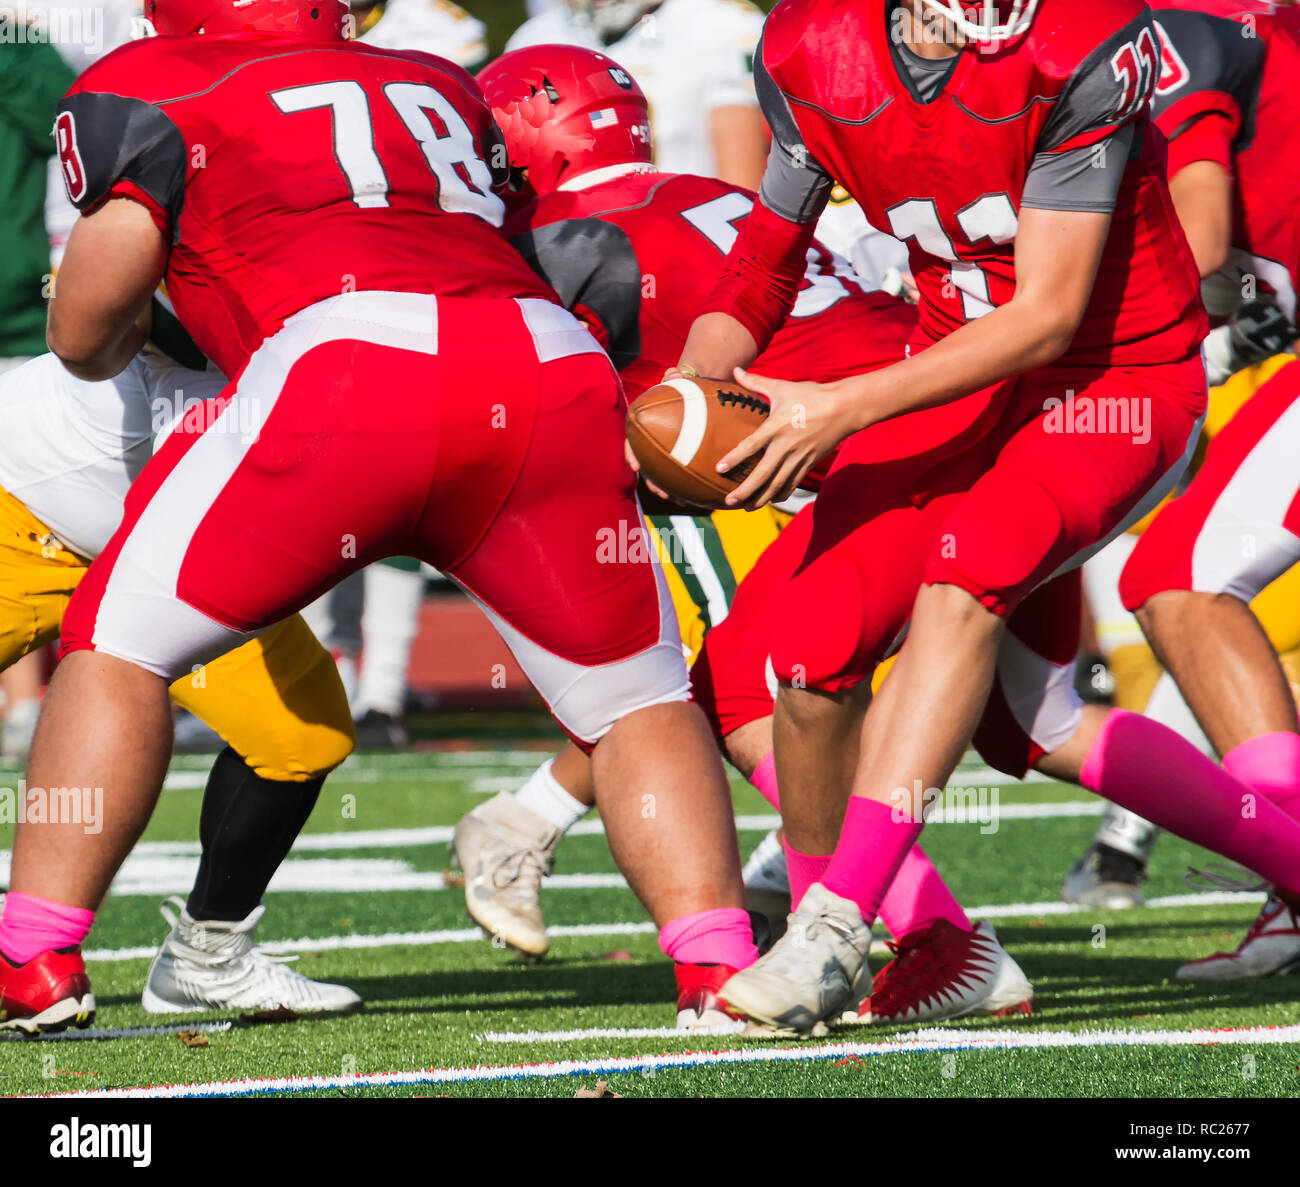 Quarterback turning to look for someone to hand off the ball to just after the snap during a high school football game - Stock Image